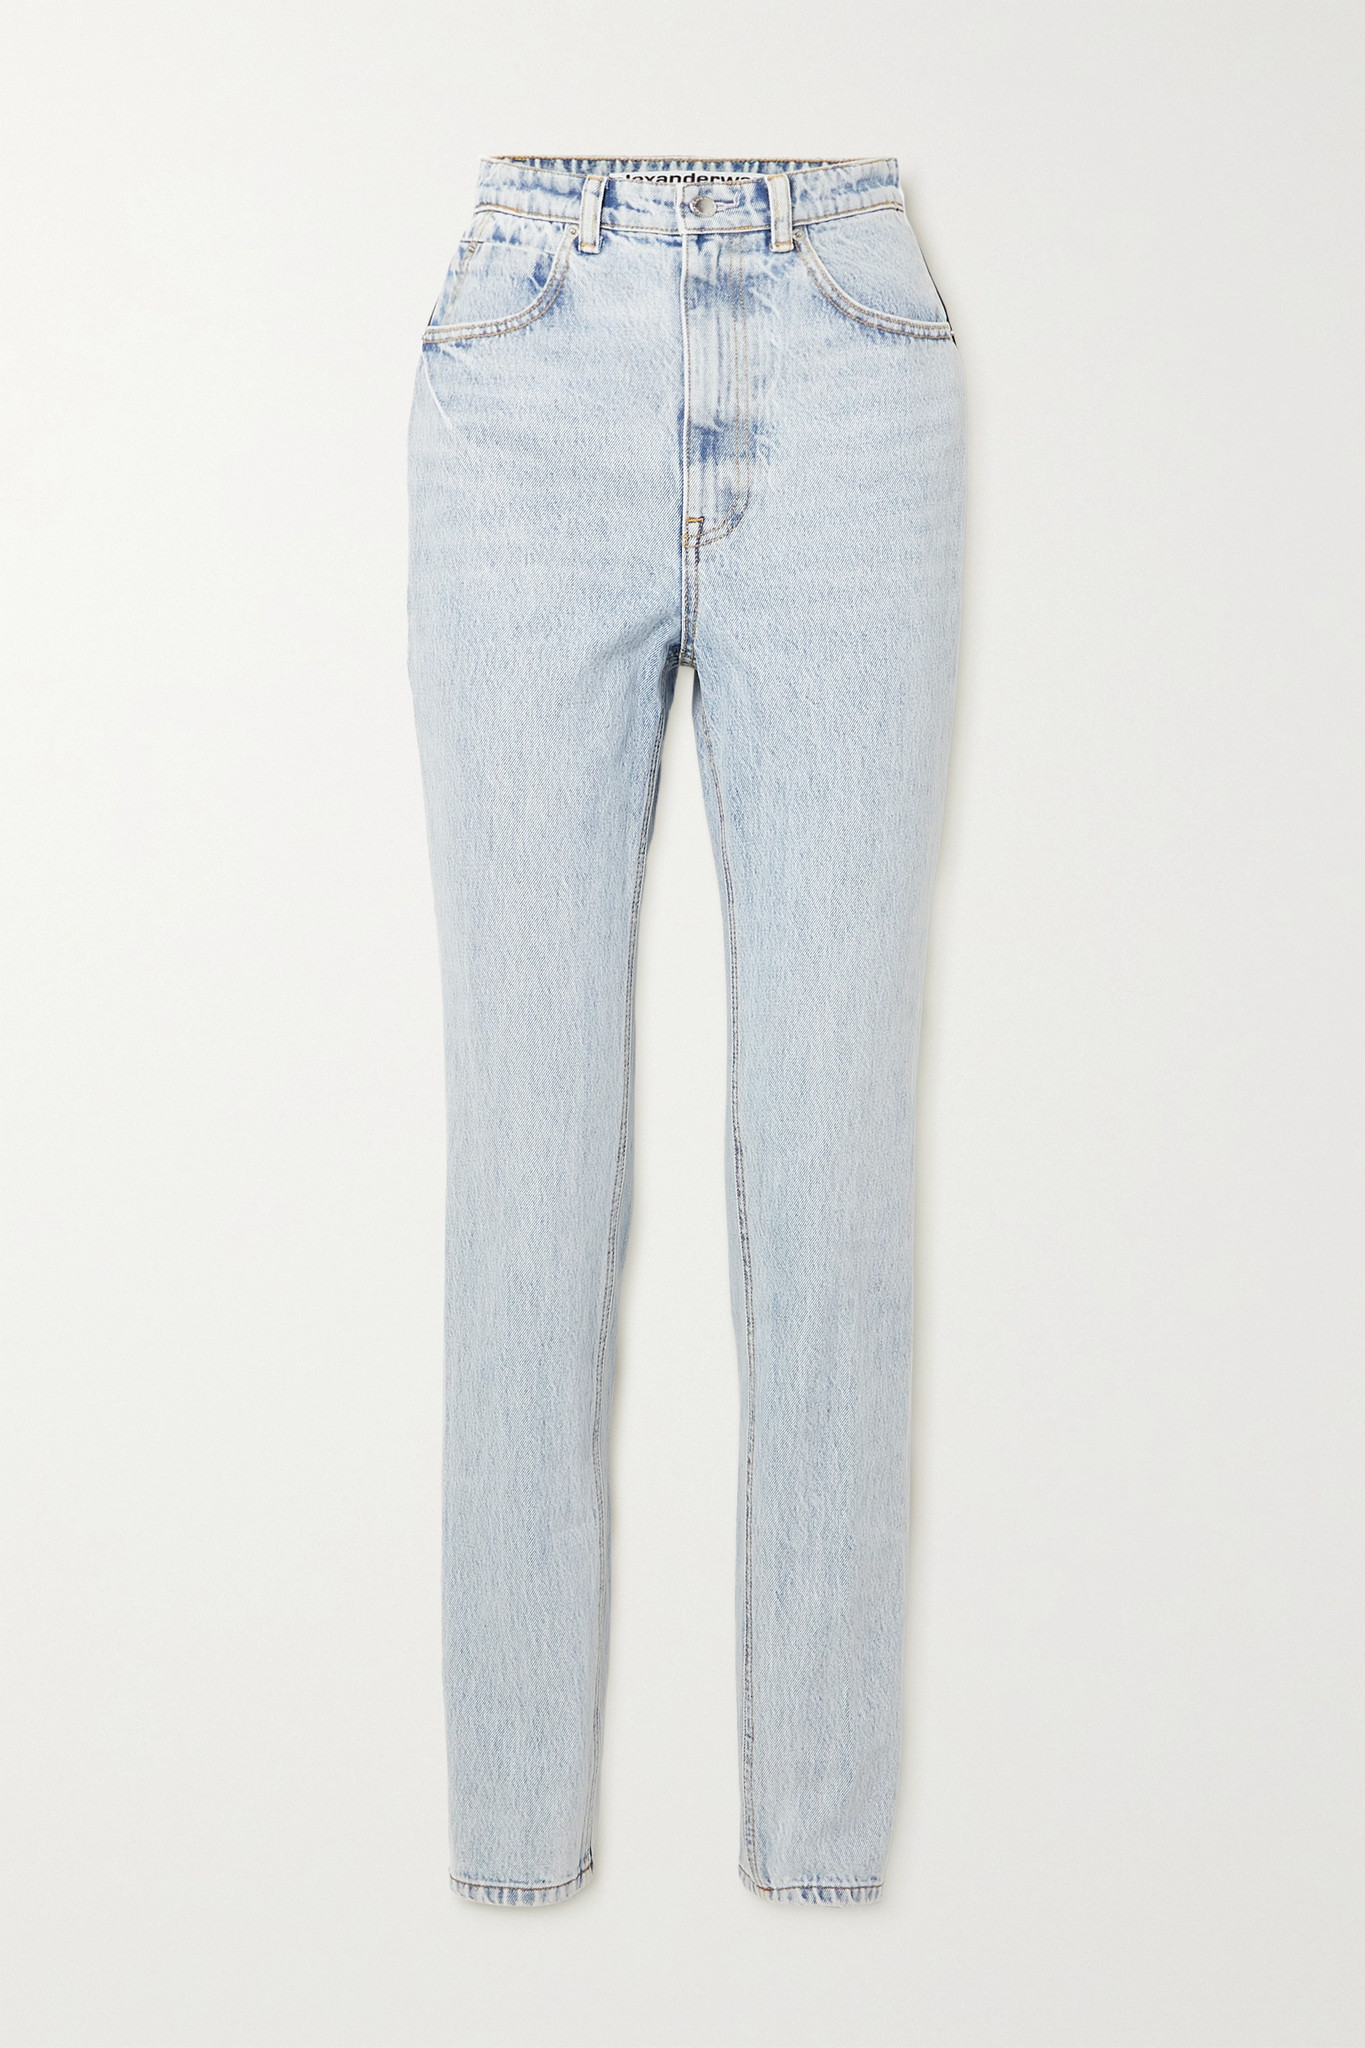 ALEXANDER WANG - Satin-trimmed High-rise Tapered Jeans - Blue - 27